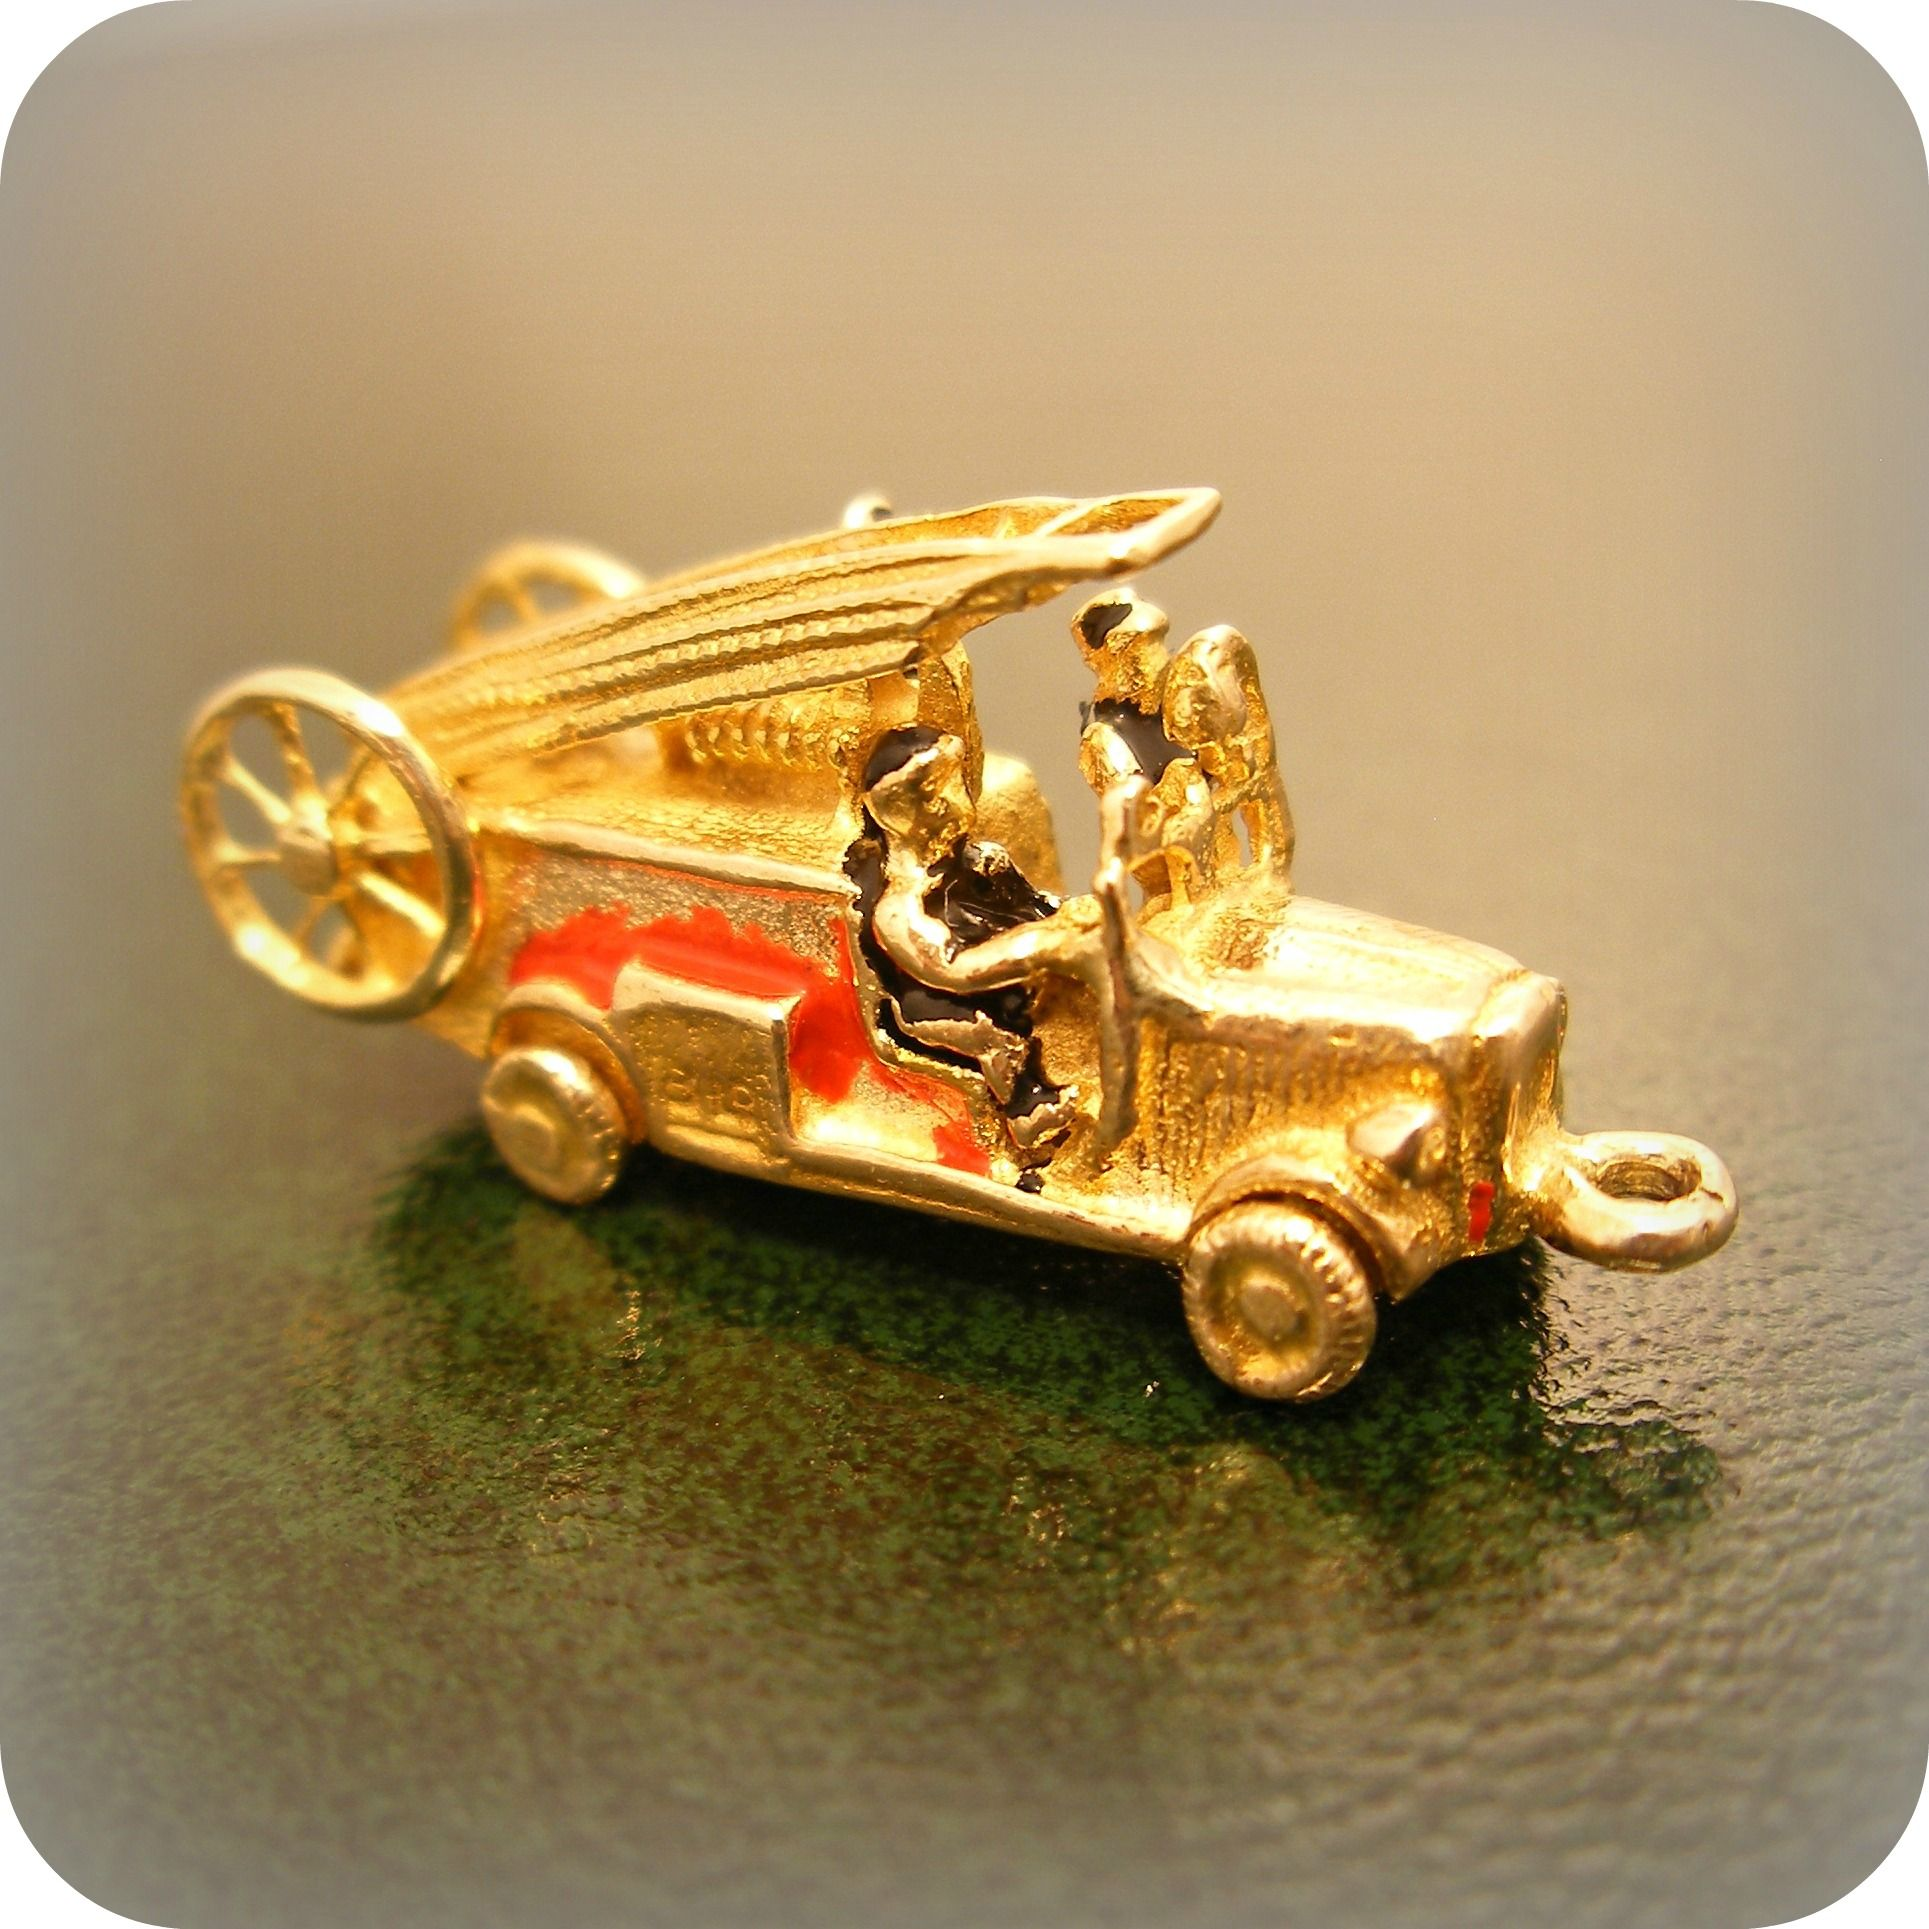 An extremely collectable vintage gold Fire Engine charm ...